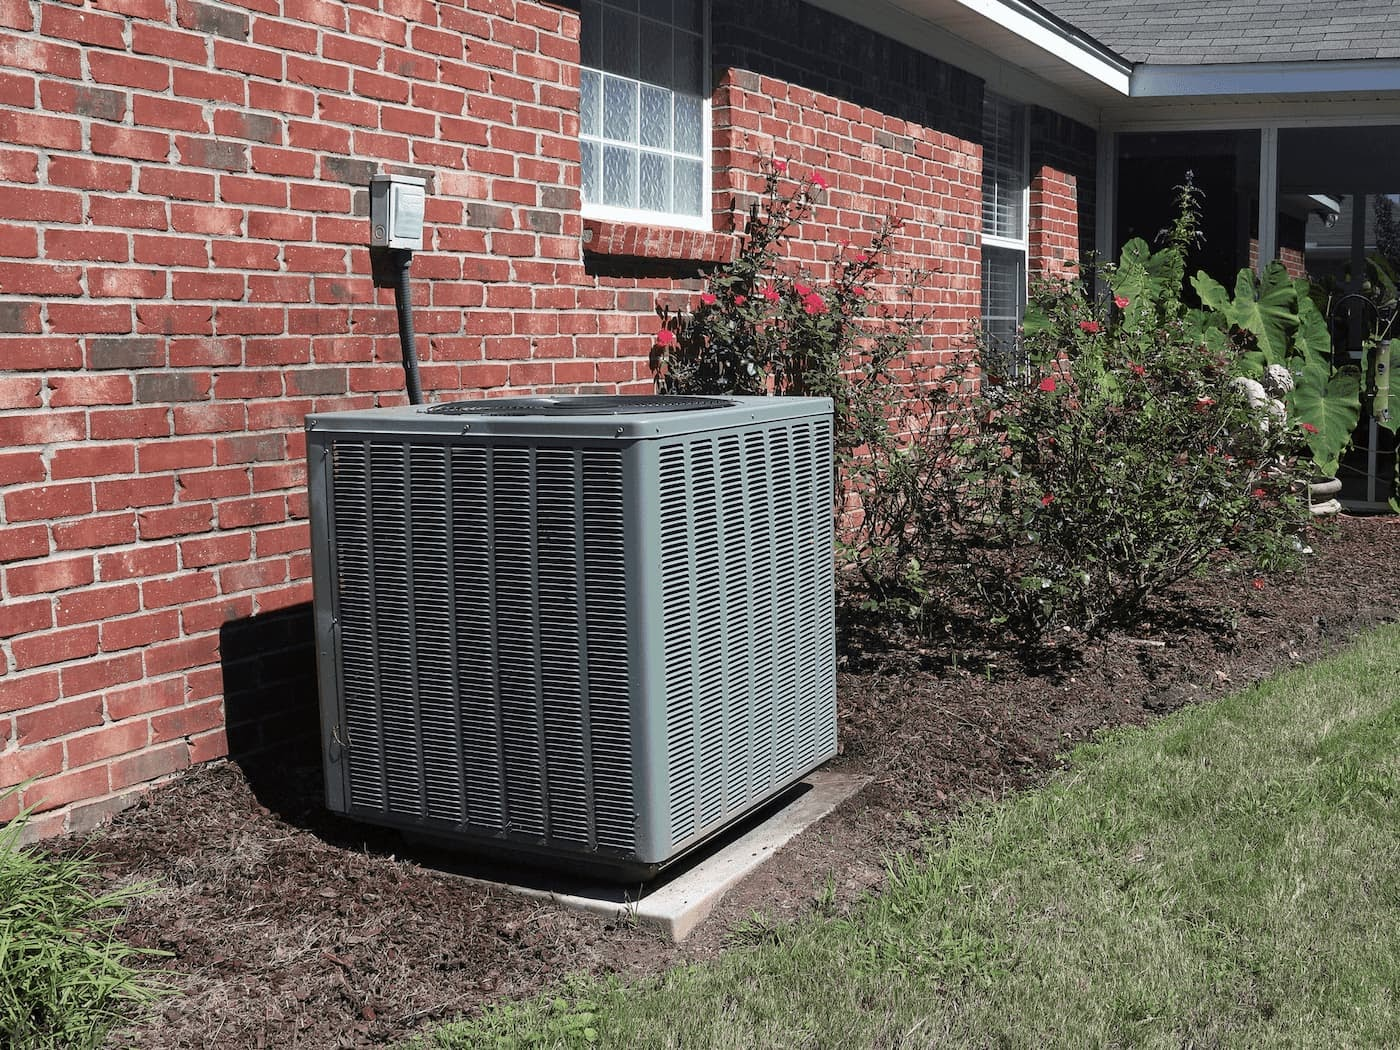 Repairs and Maintenance of the HVAC in your Rental Property